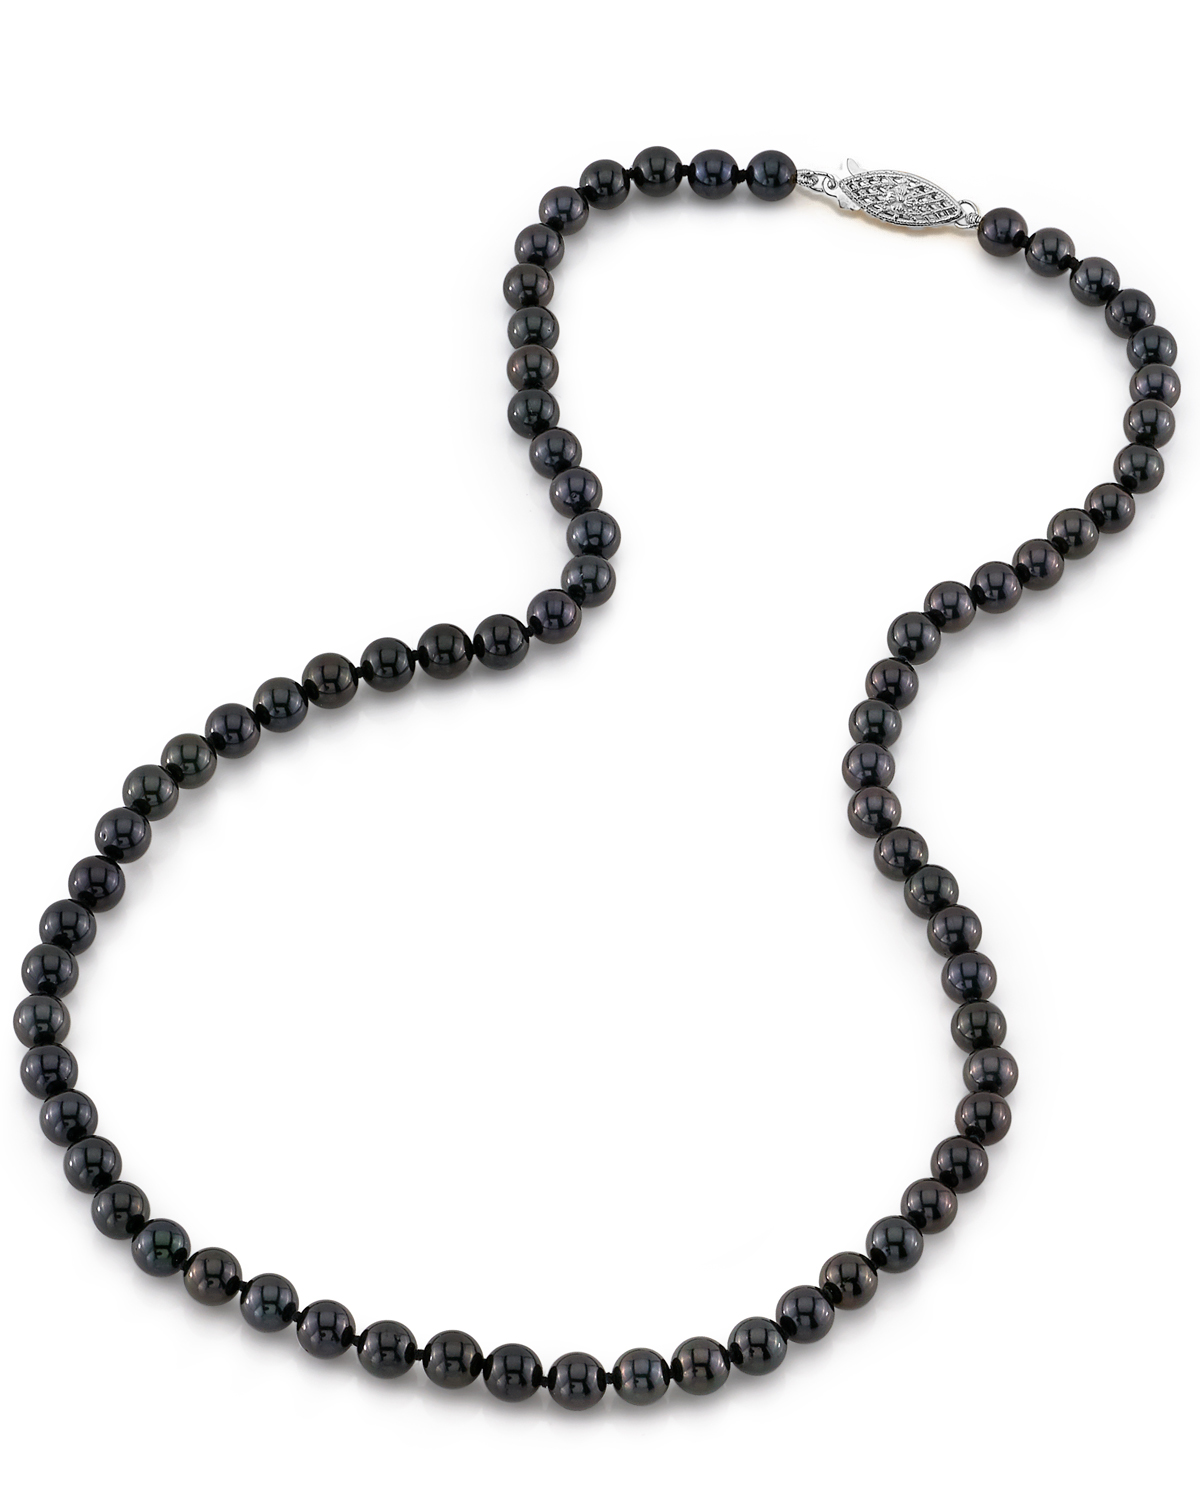 5.5-6.0mm Japanese Akoya Black Pearl Necklace- AAA Quality